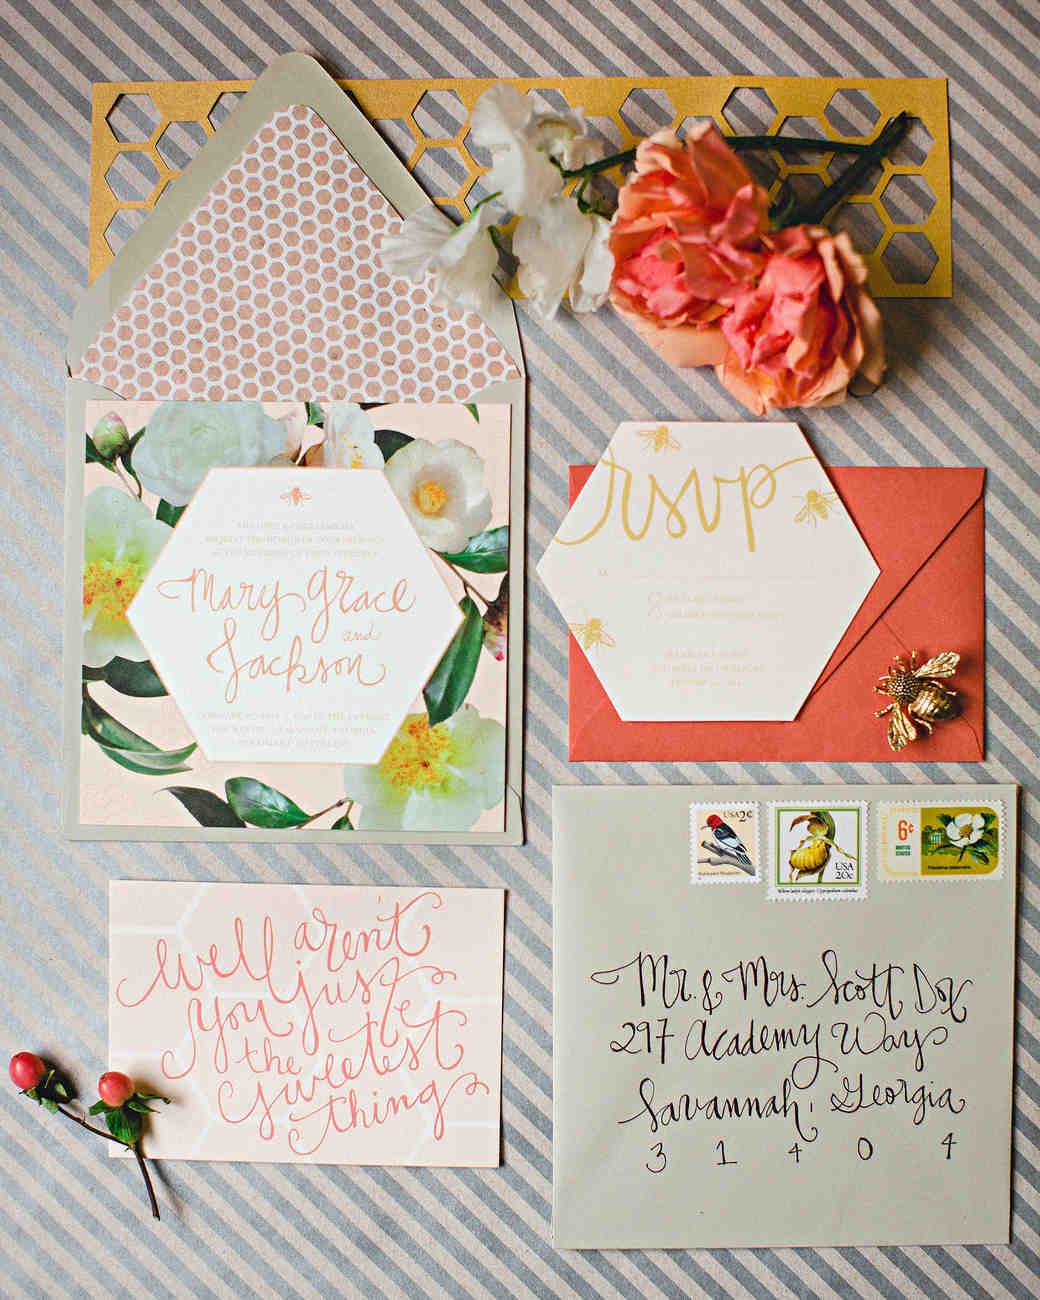 Honeycomb Wedding Inspiration, Invitation Suite with Honeycomb Motif